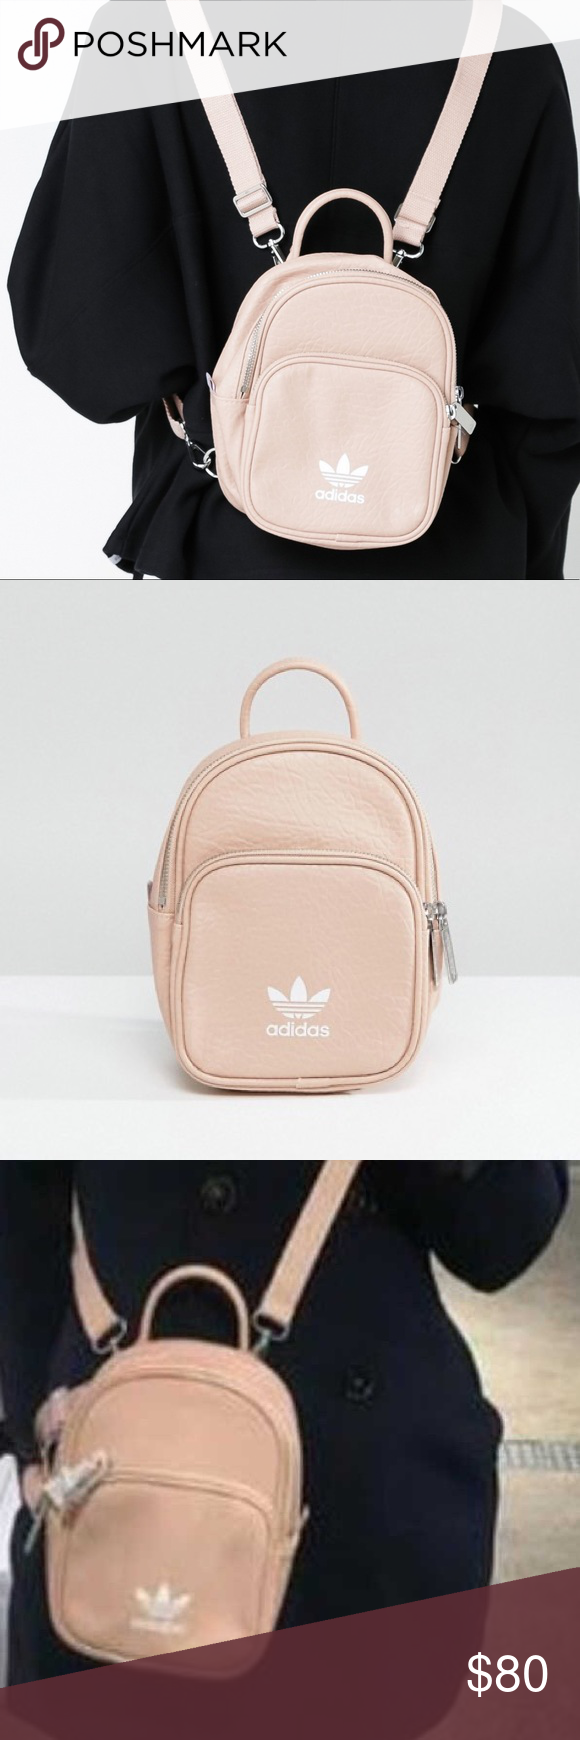 5166c50e04a Authentic Adidas Mini Backpack Sold out online | Adidas pink mini ...